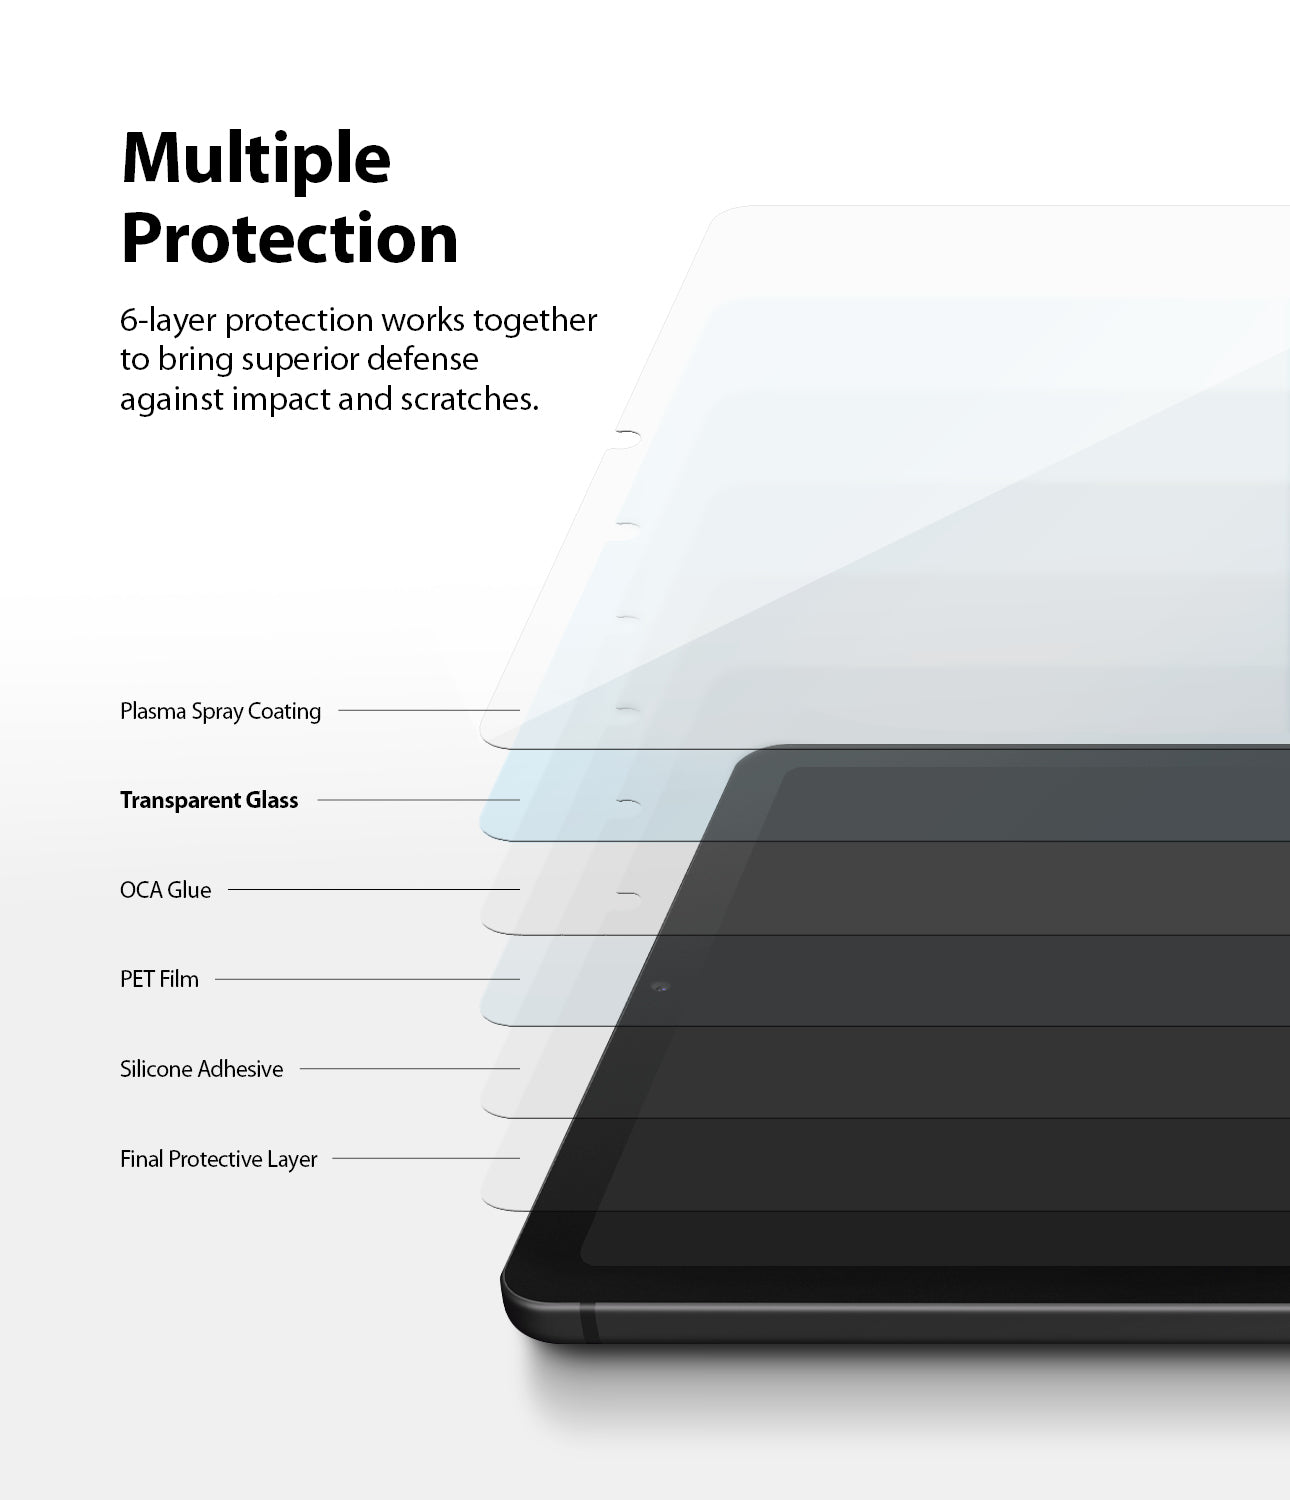 multiple protection - 6 layer protection works together to bring superior defense against impact and scratches